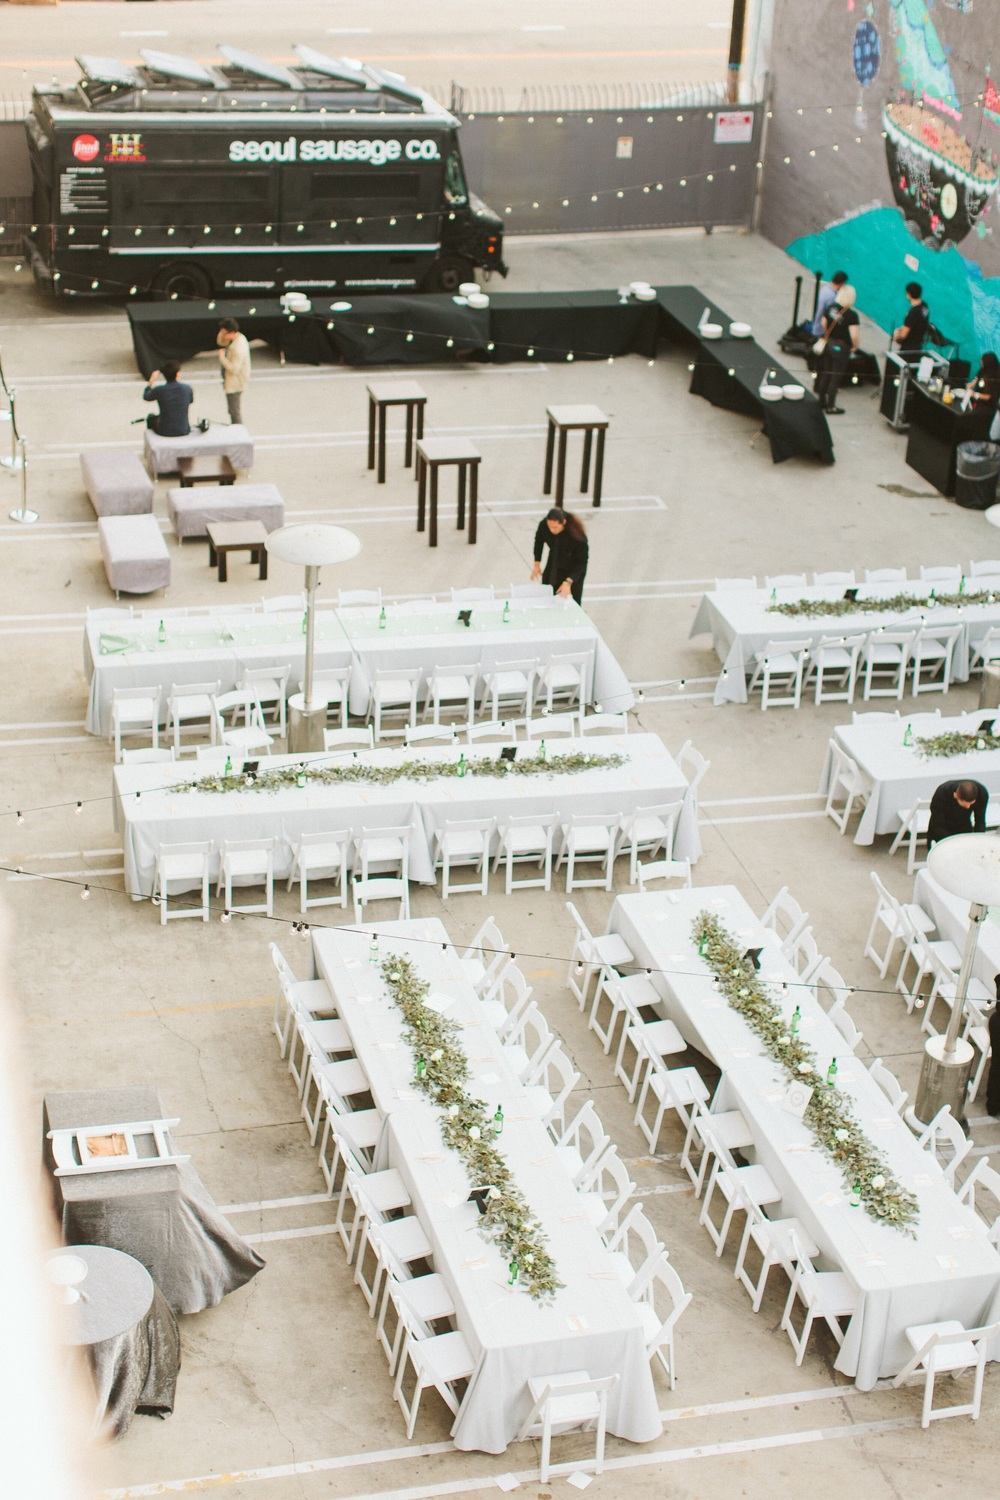 Outdoor space was transformed from a parking lot, to an amazing space with long tables, eucalyptus leaves, a clean, white settings.